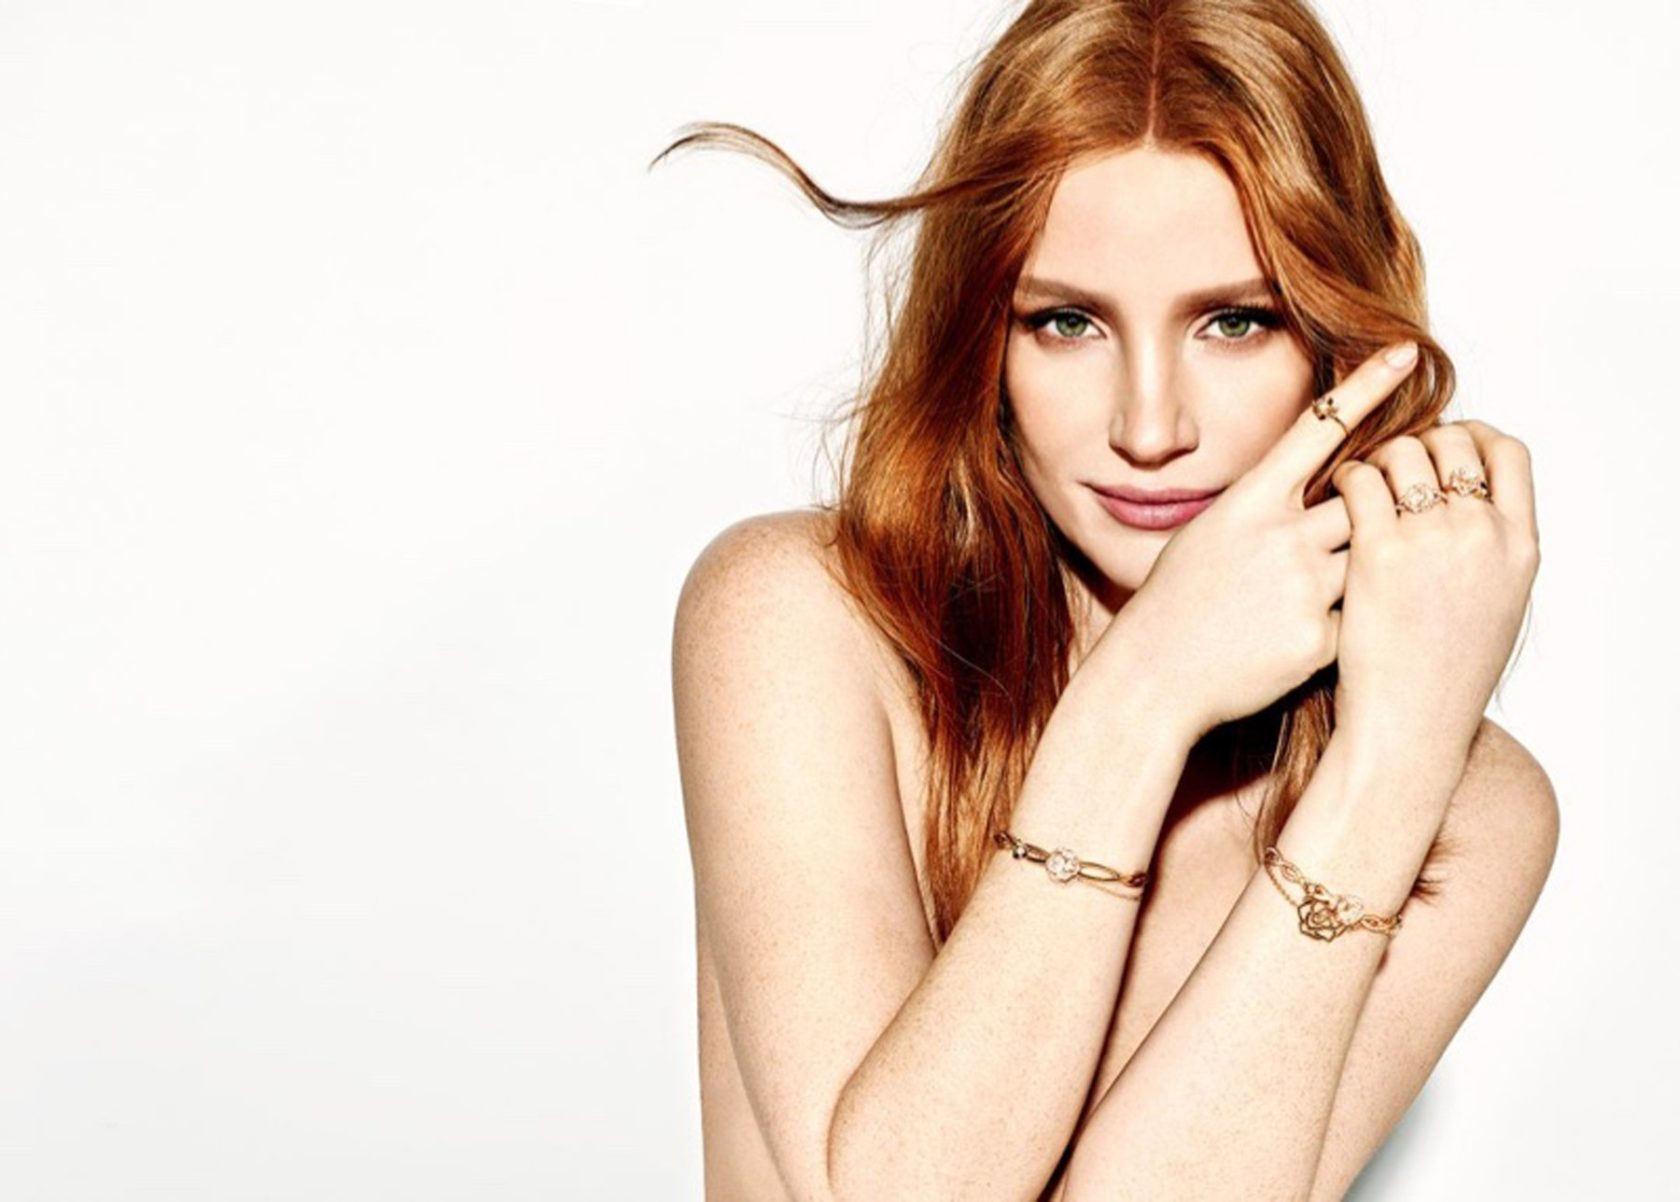 Hollywood star Jessica Chastain stars in Piaget jewelry brand new campaign